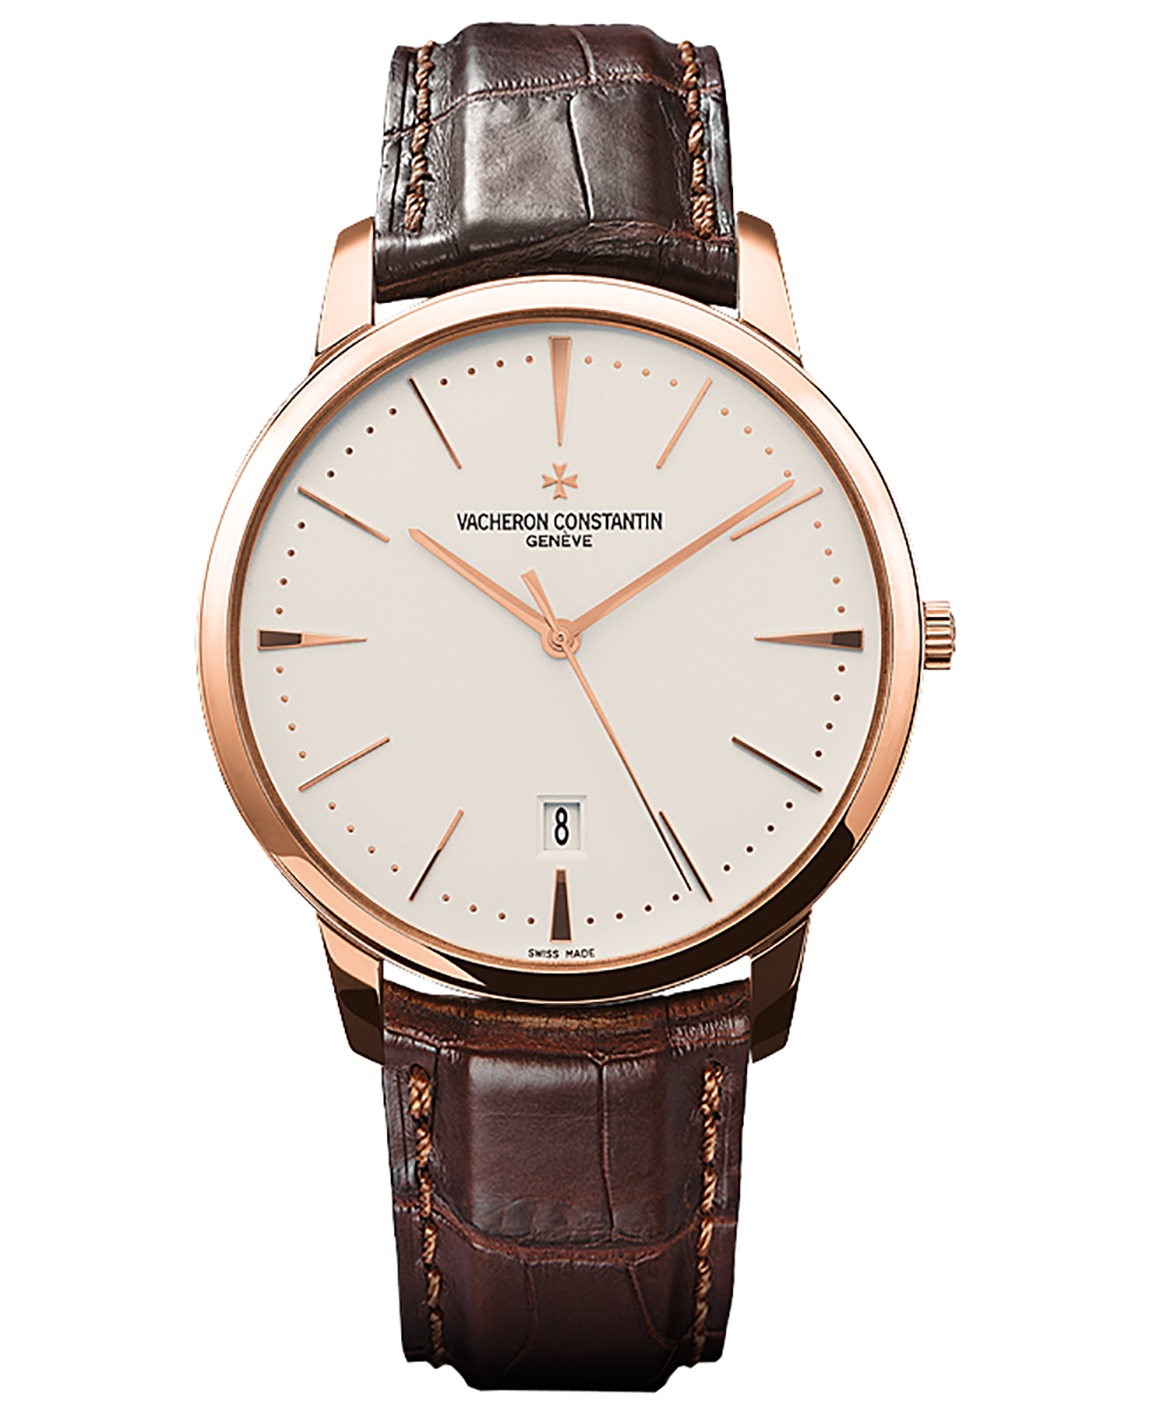 Vacheron Constantin Patrimony 85180 18k Rose Gold Watch